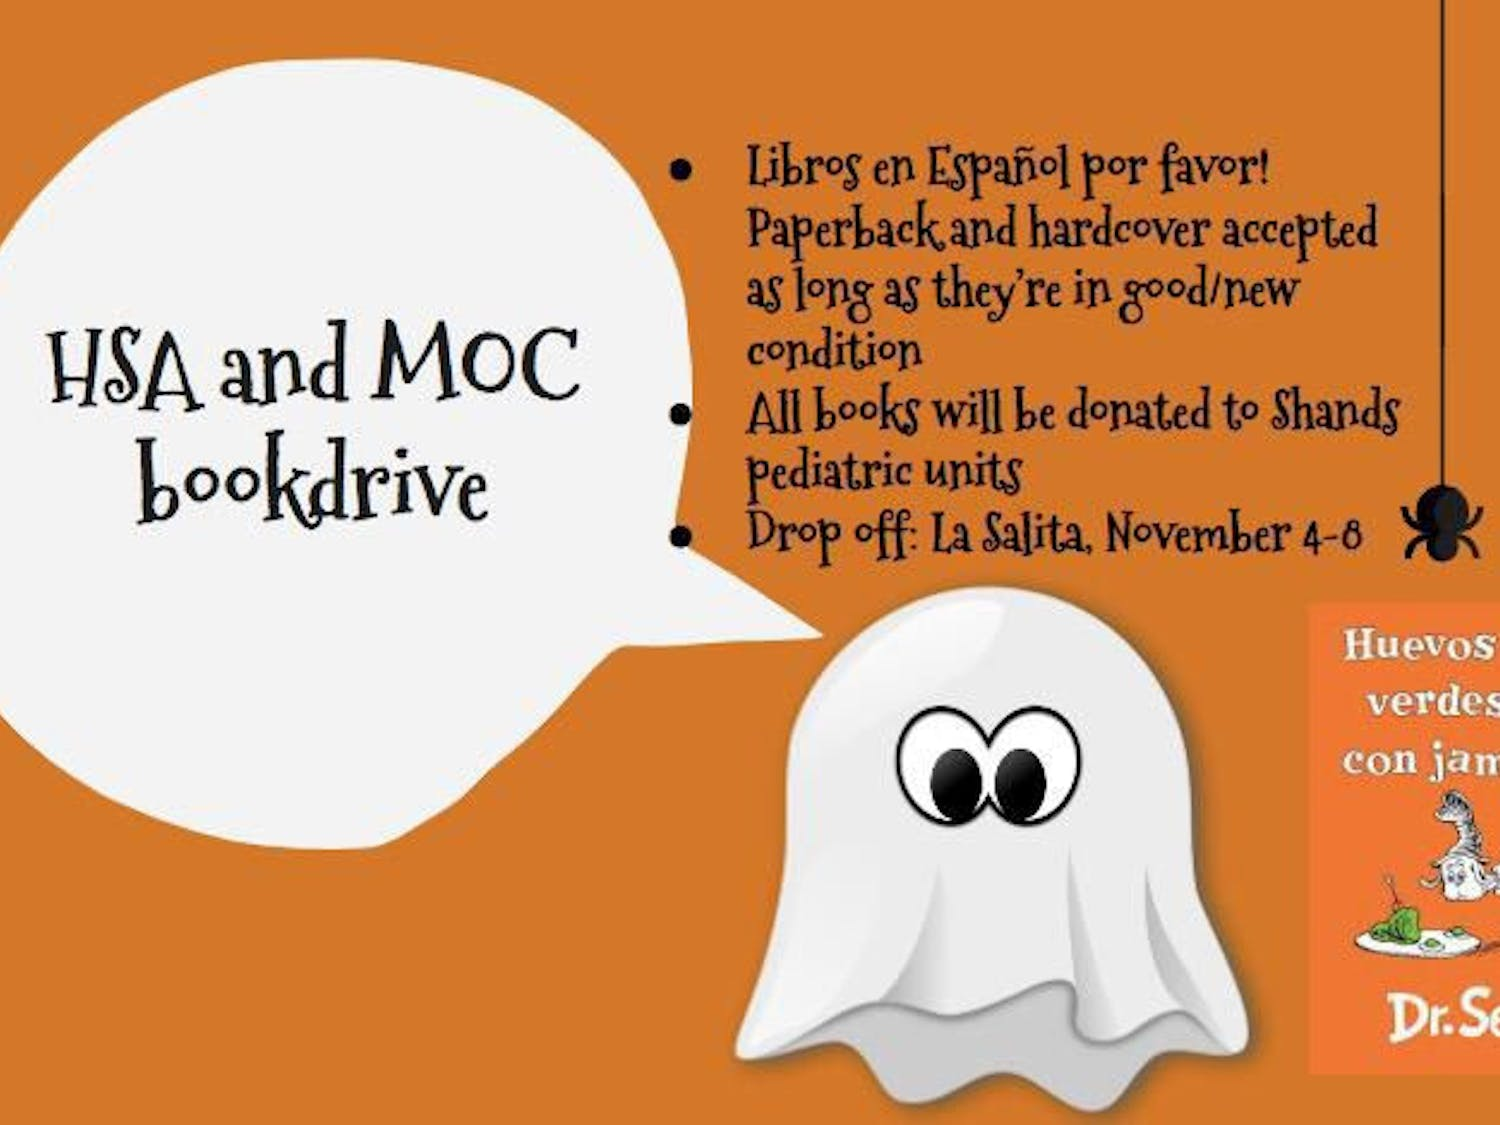 The UF Hispanic Student Association and the Mobile Outreach Clinic are hosting a book drive to collect Spanish children's books for the UF Health Shands pediatric units starting today through Sunday.